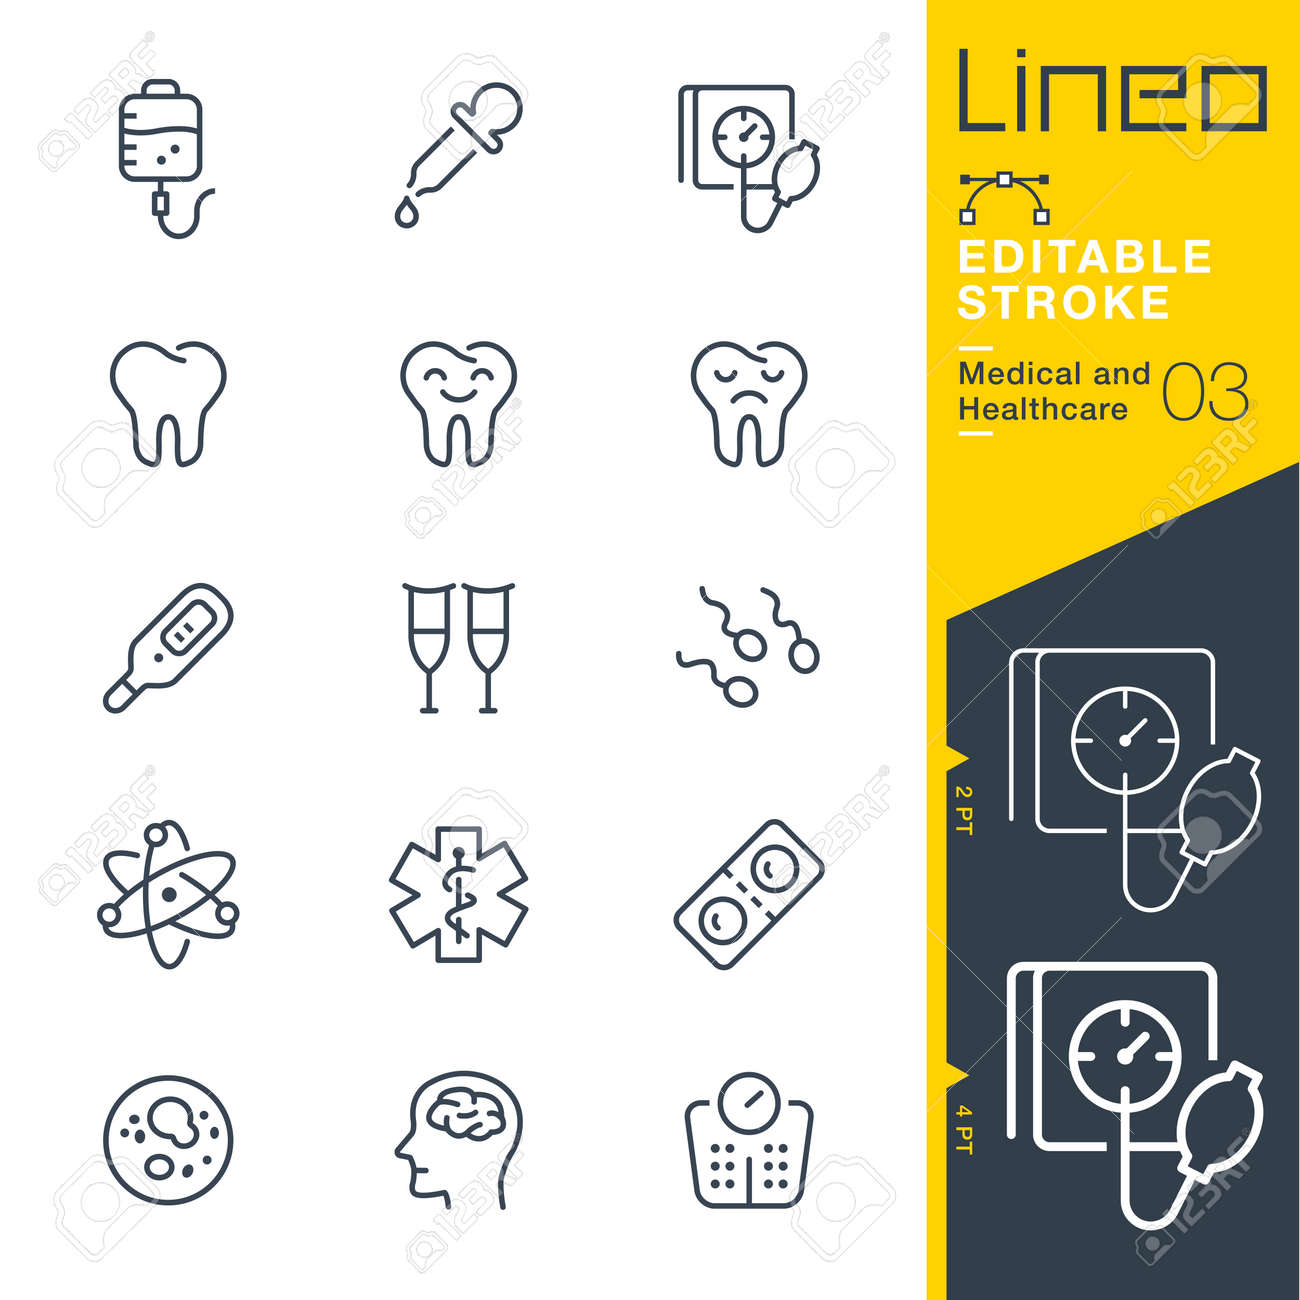 Lineo Editable Stroke - Medical and Healthcare line icon Vector Icons - Adjust stroke weight - Change to any color - 85190487